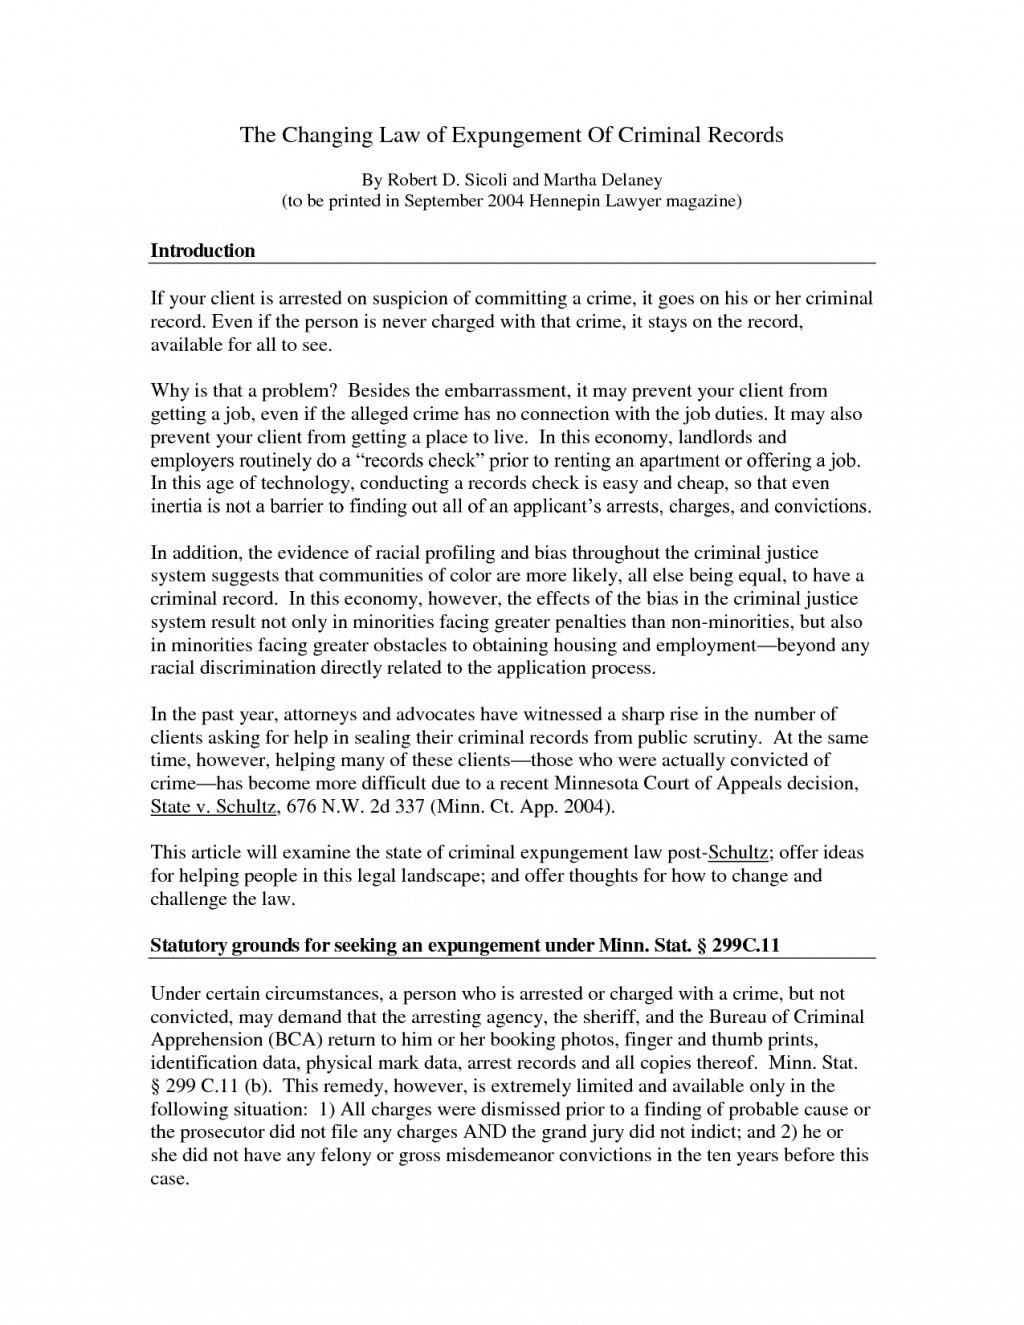 014 Essay Example Reference Letter For Friendartment Deloitteplication Character Template Buzzle Sample Format Black Paperartmentartmentartment Kitchen Design Your Own Dallas District Awful Argumentative Outline Pdf Mla Grade 6 Large